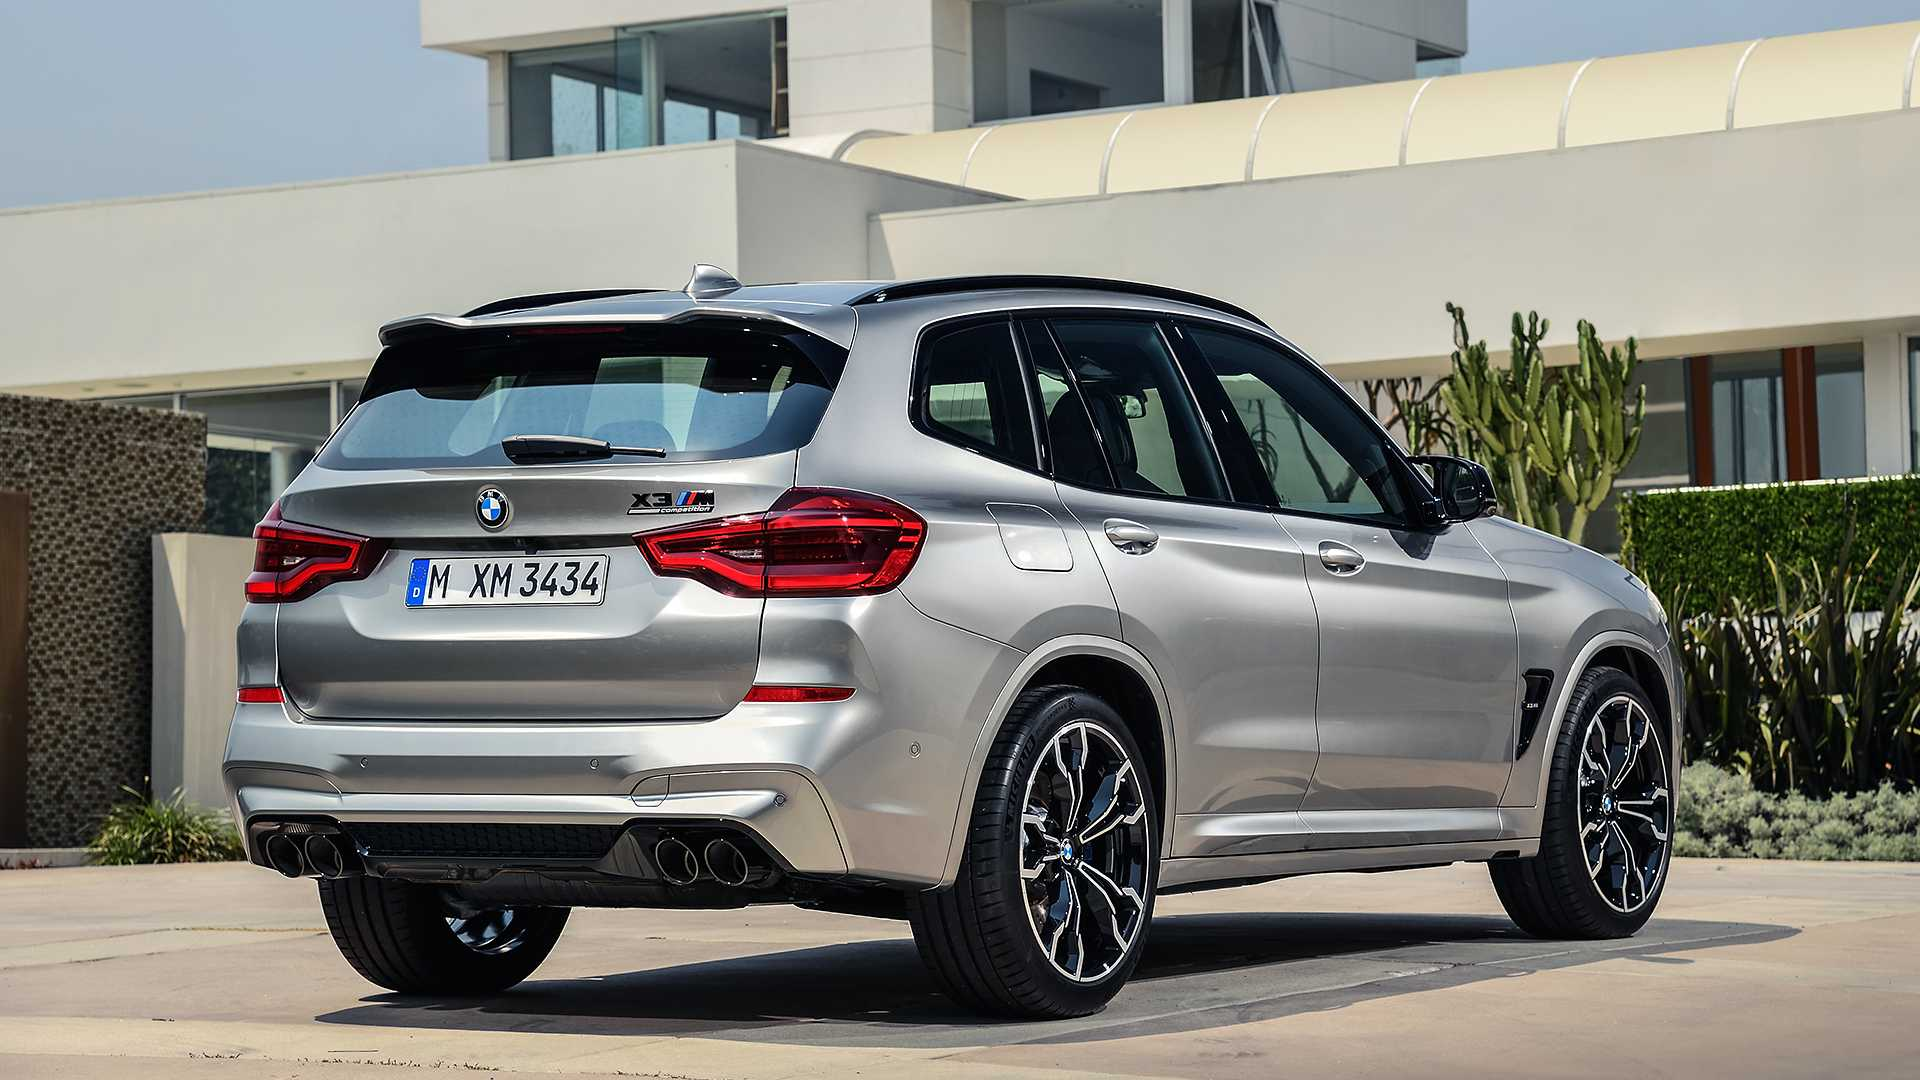 58 The Bmw X3 2020 Release Date Prices